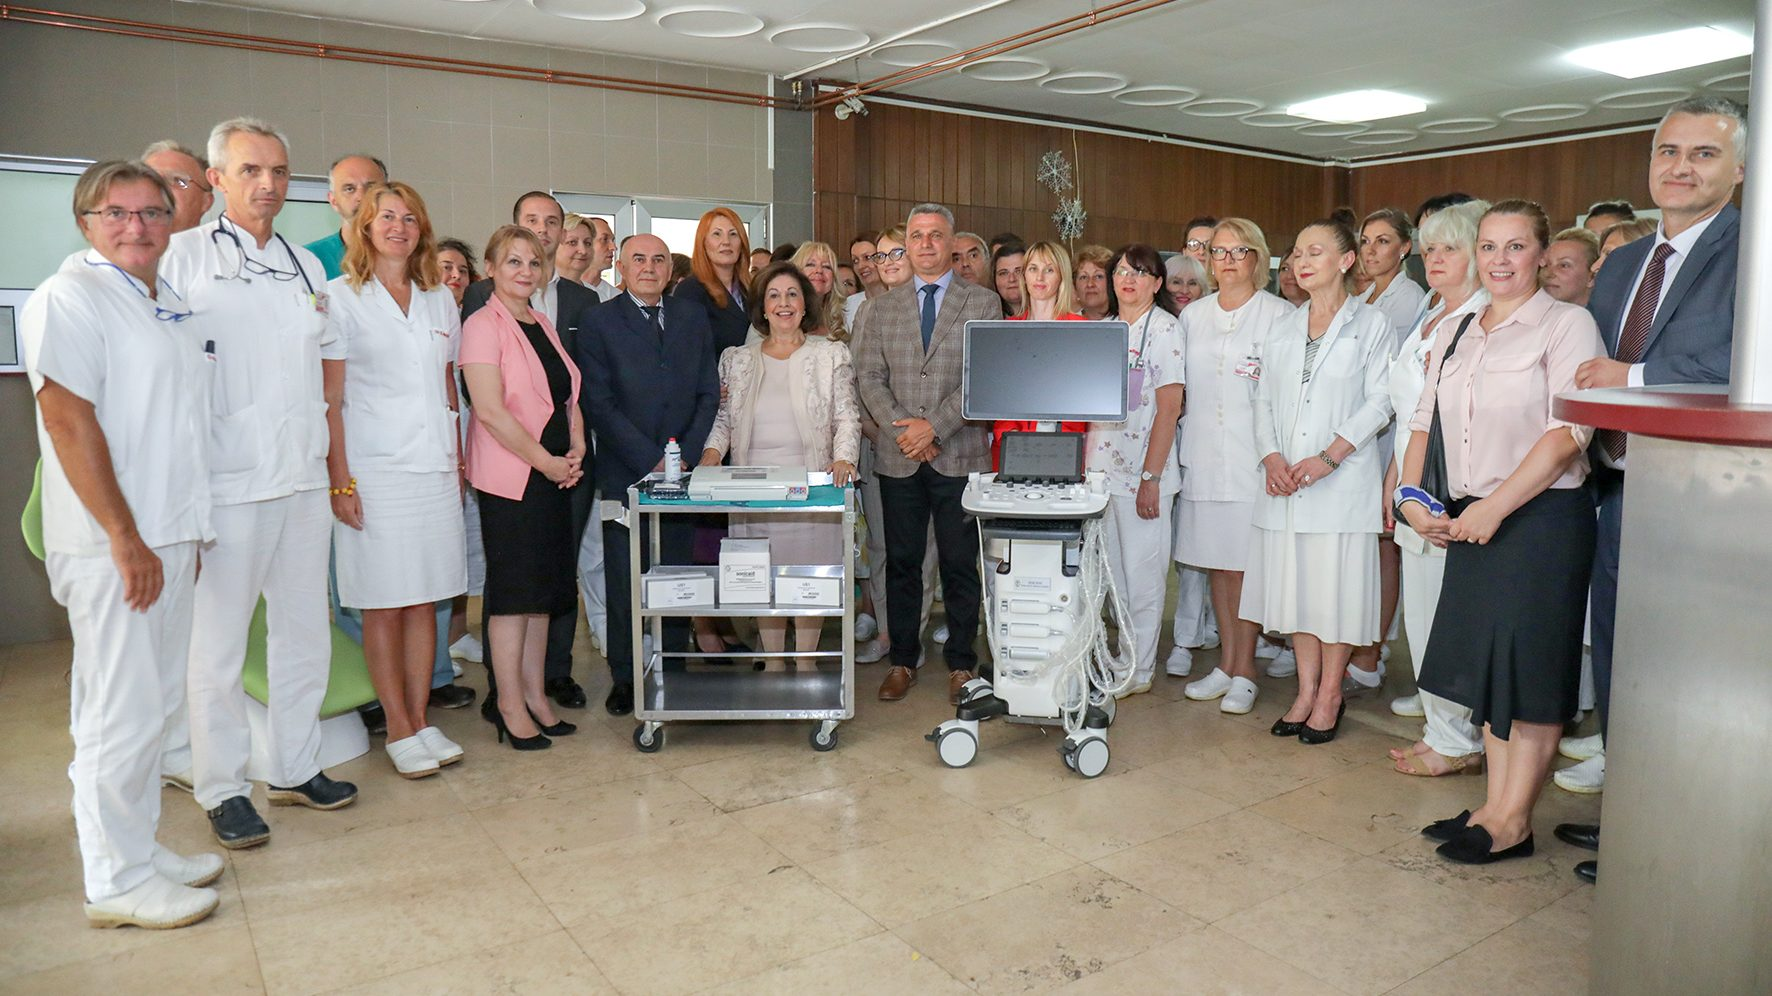 HRH CROWN PRINCESS KATHERINE DELIVERS MEDICAL EQUIPMENT WORTH 40,300 EUROS TO CACAK HOSPITAL